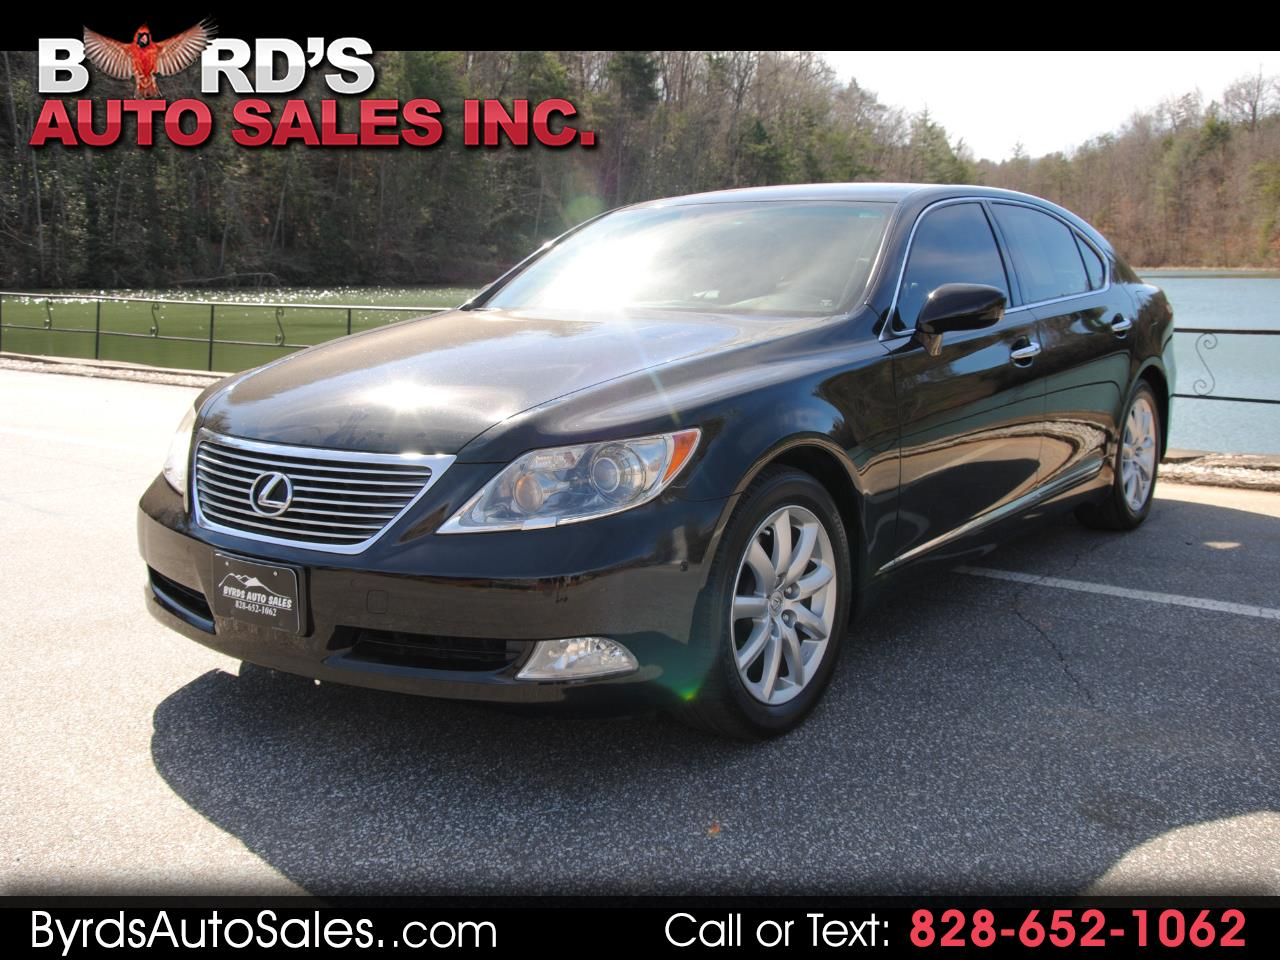 2007 Lexus LS 460  for sale VIN: JTHGL46F875002874